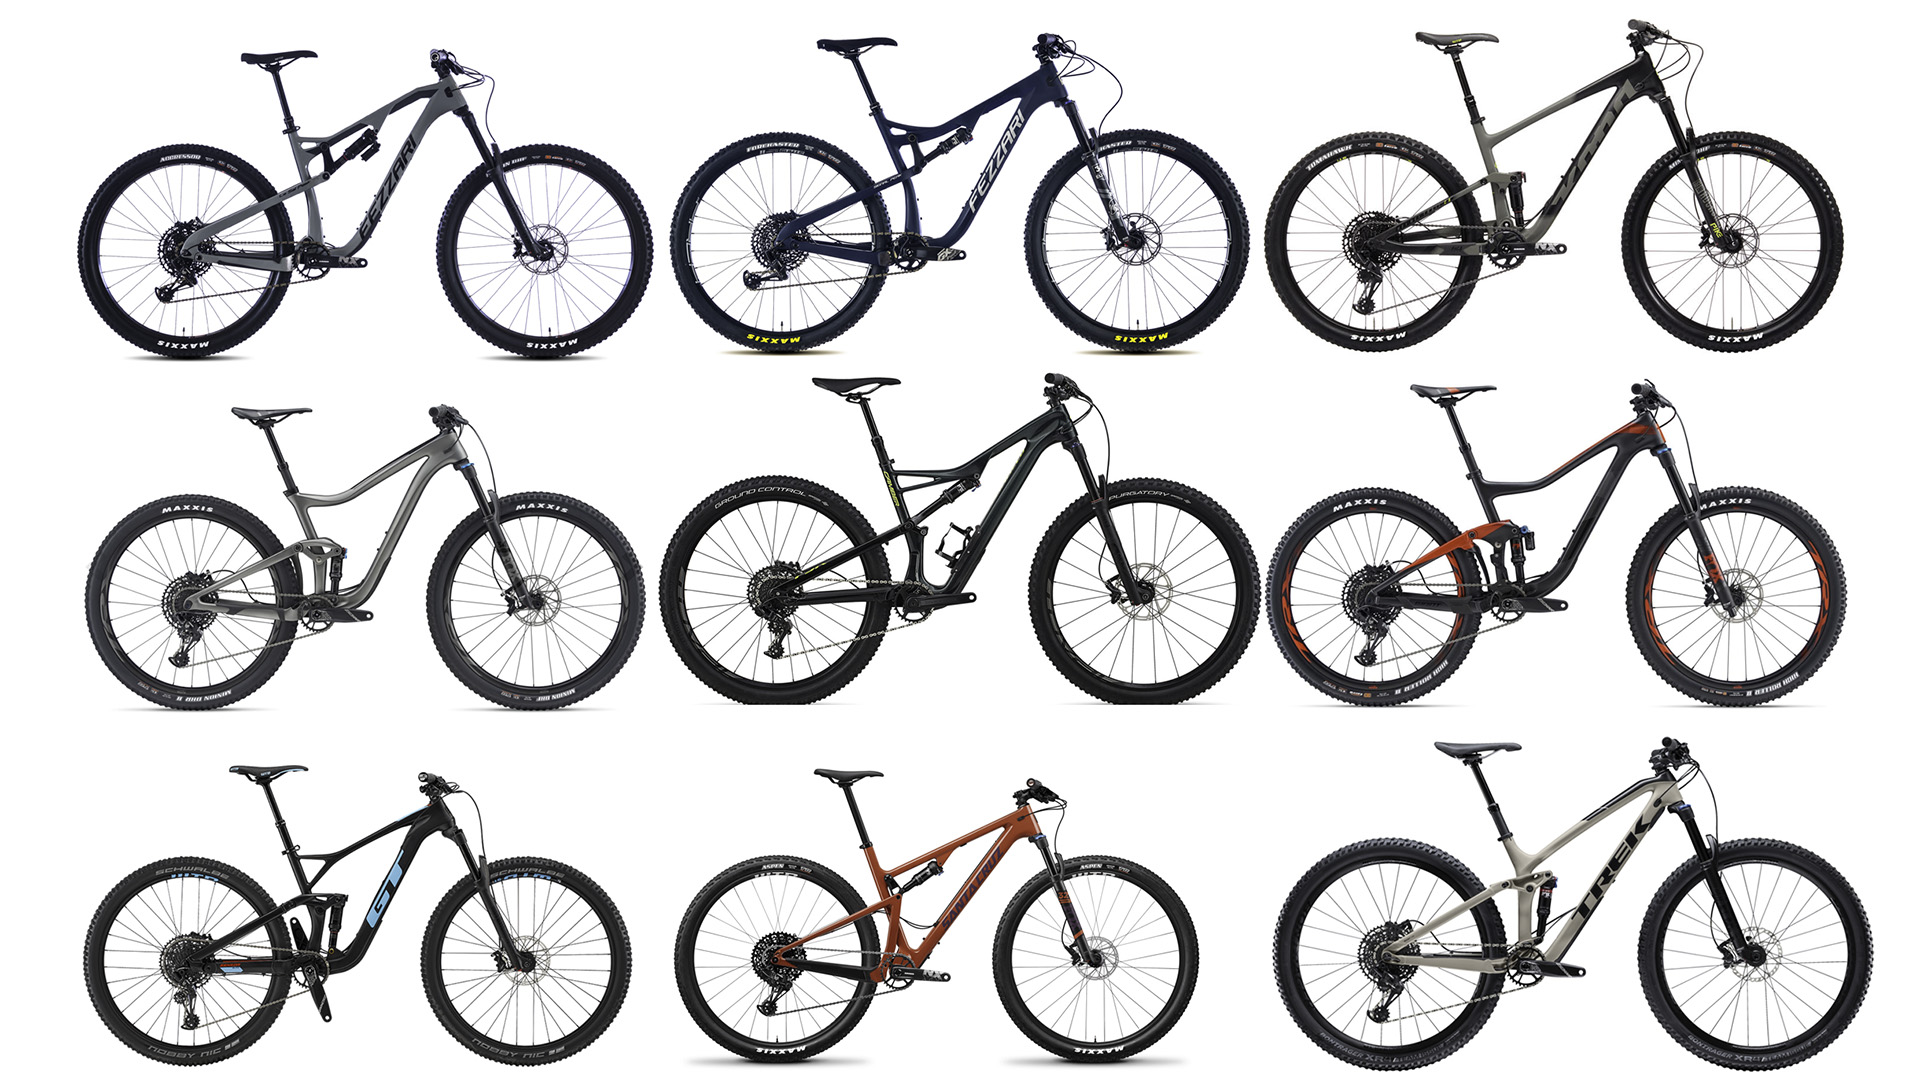 Dual Suspension Mountain Bikes With Free 14 Day Test Ride >> Best Carbon Bikes Under 4 000 Bike Magazine